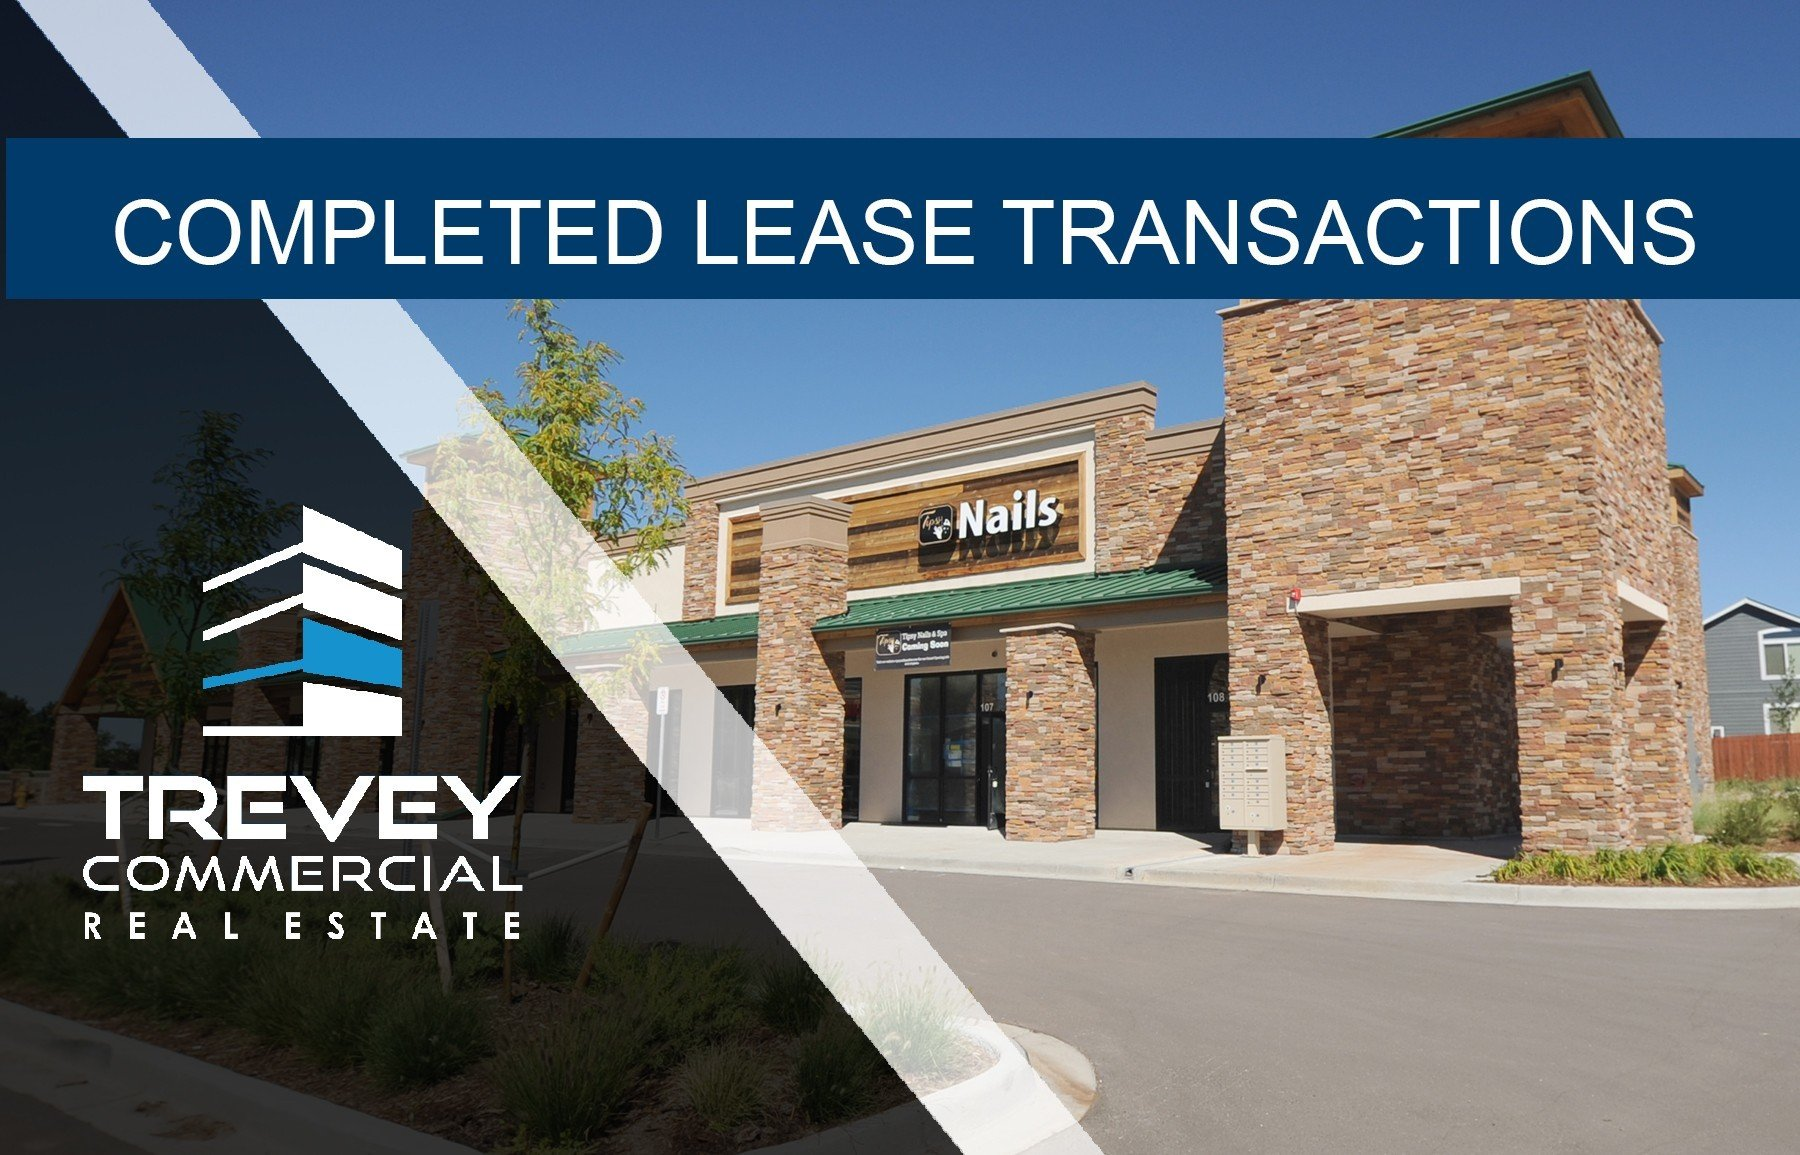 Search Properties | Trevey Commercial Real Estate